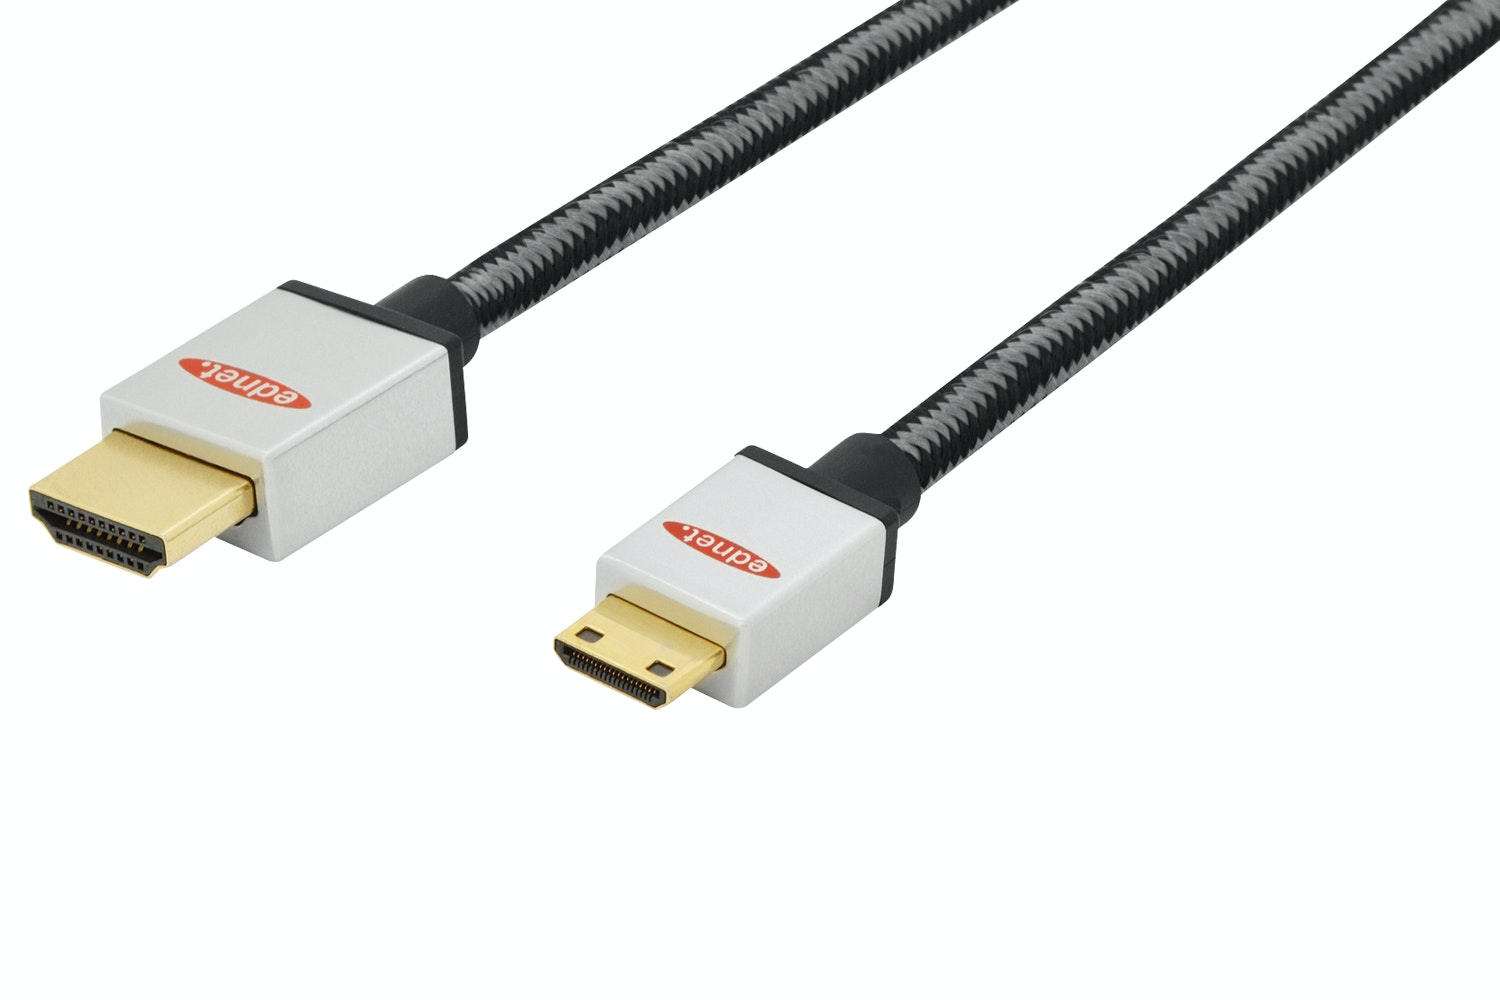 Ednet HDMI to Mini HDMI Cable | 2m